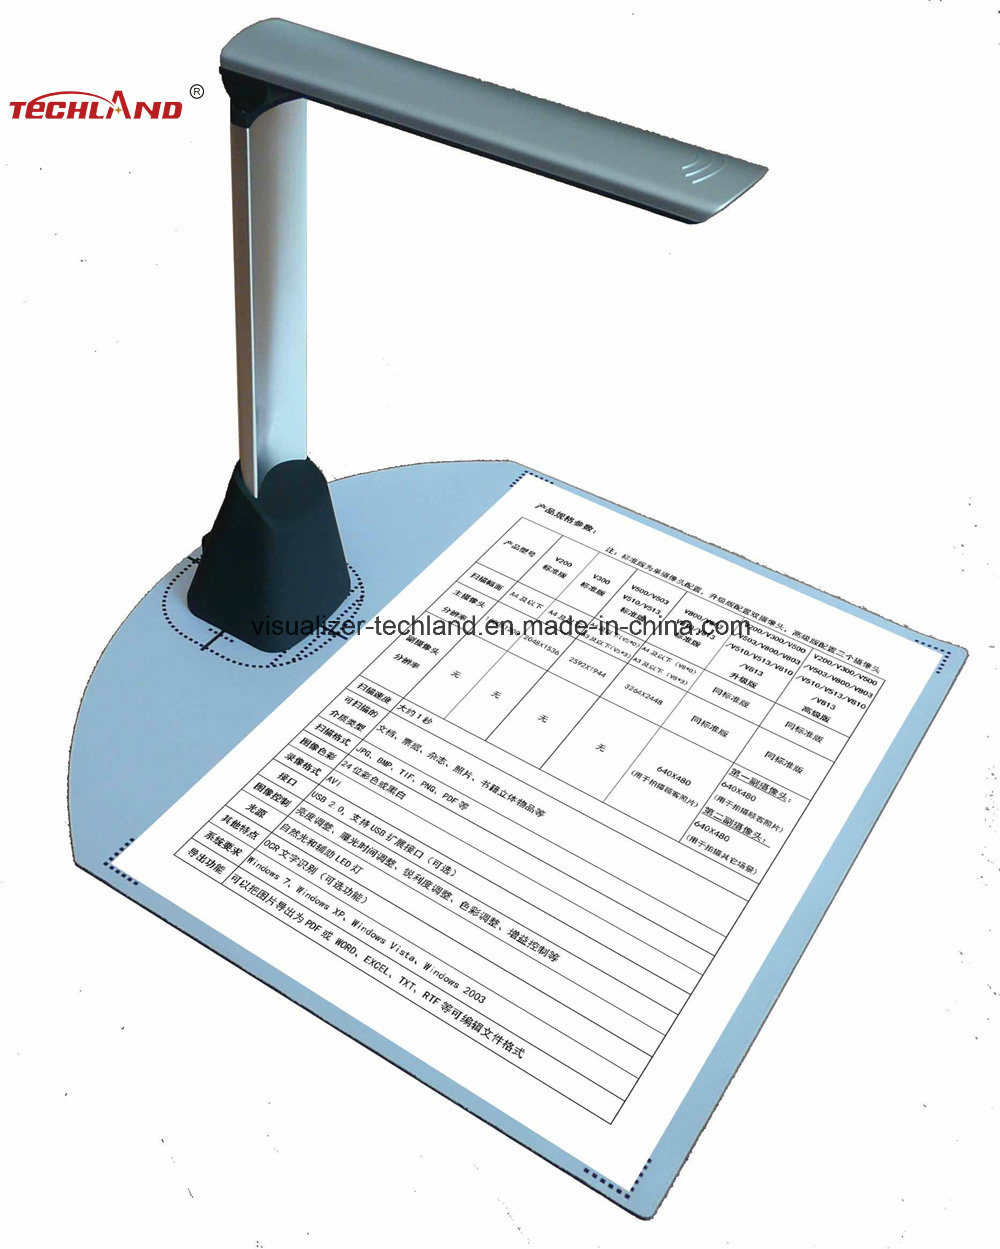 Portable USB Document Camera Educational Office Equipment